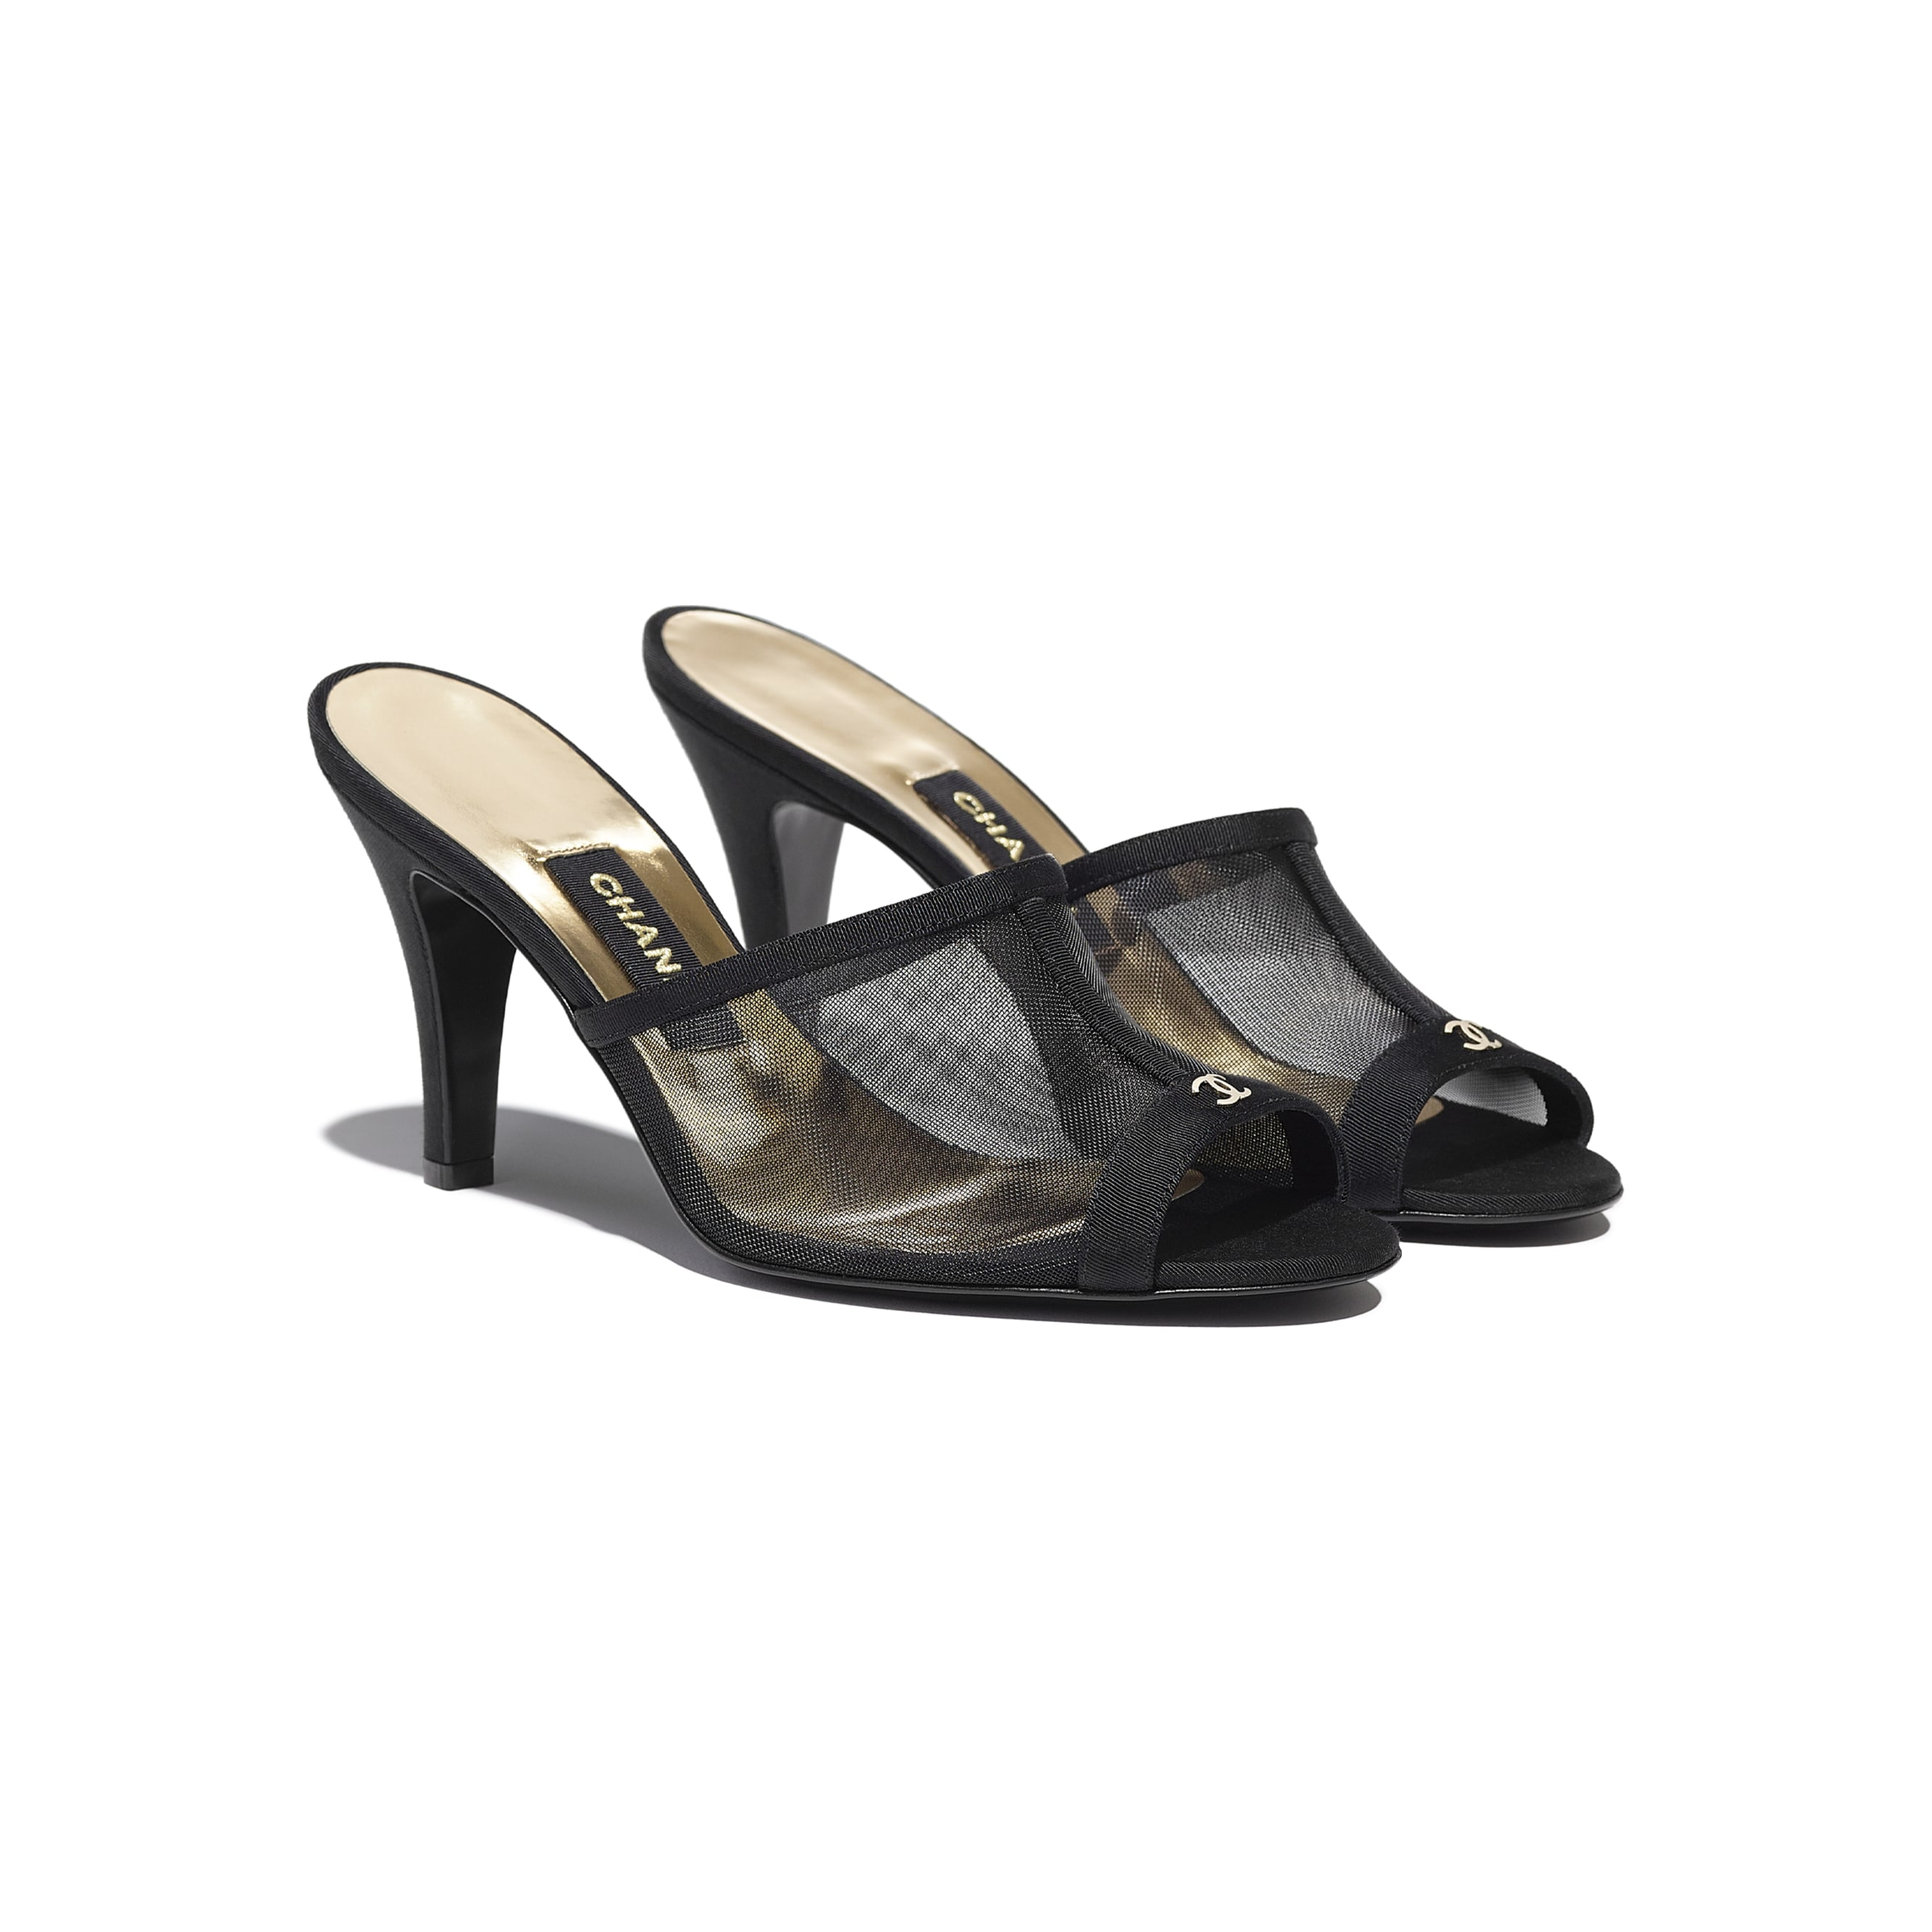 Mules - Black - Mesh & Grosgrain - CHANEL - Alternative view - see standard sized version